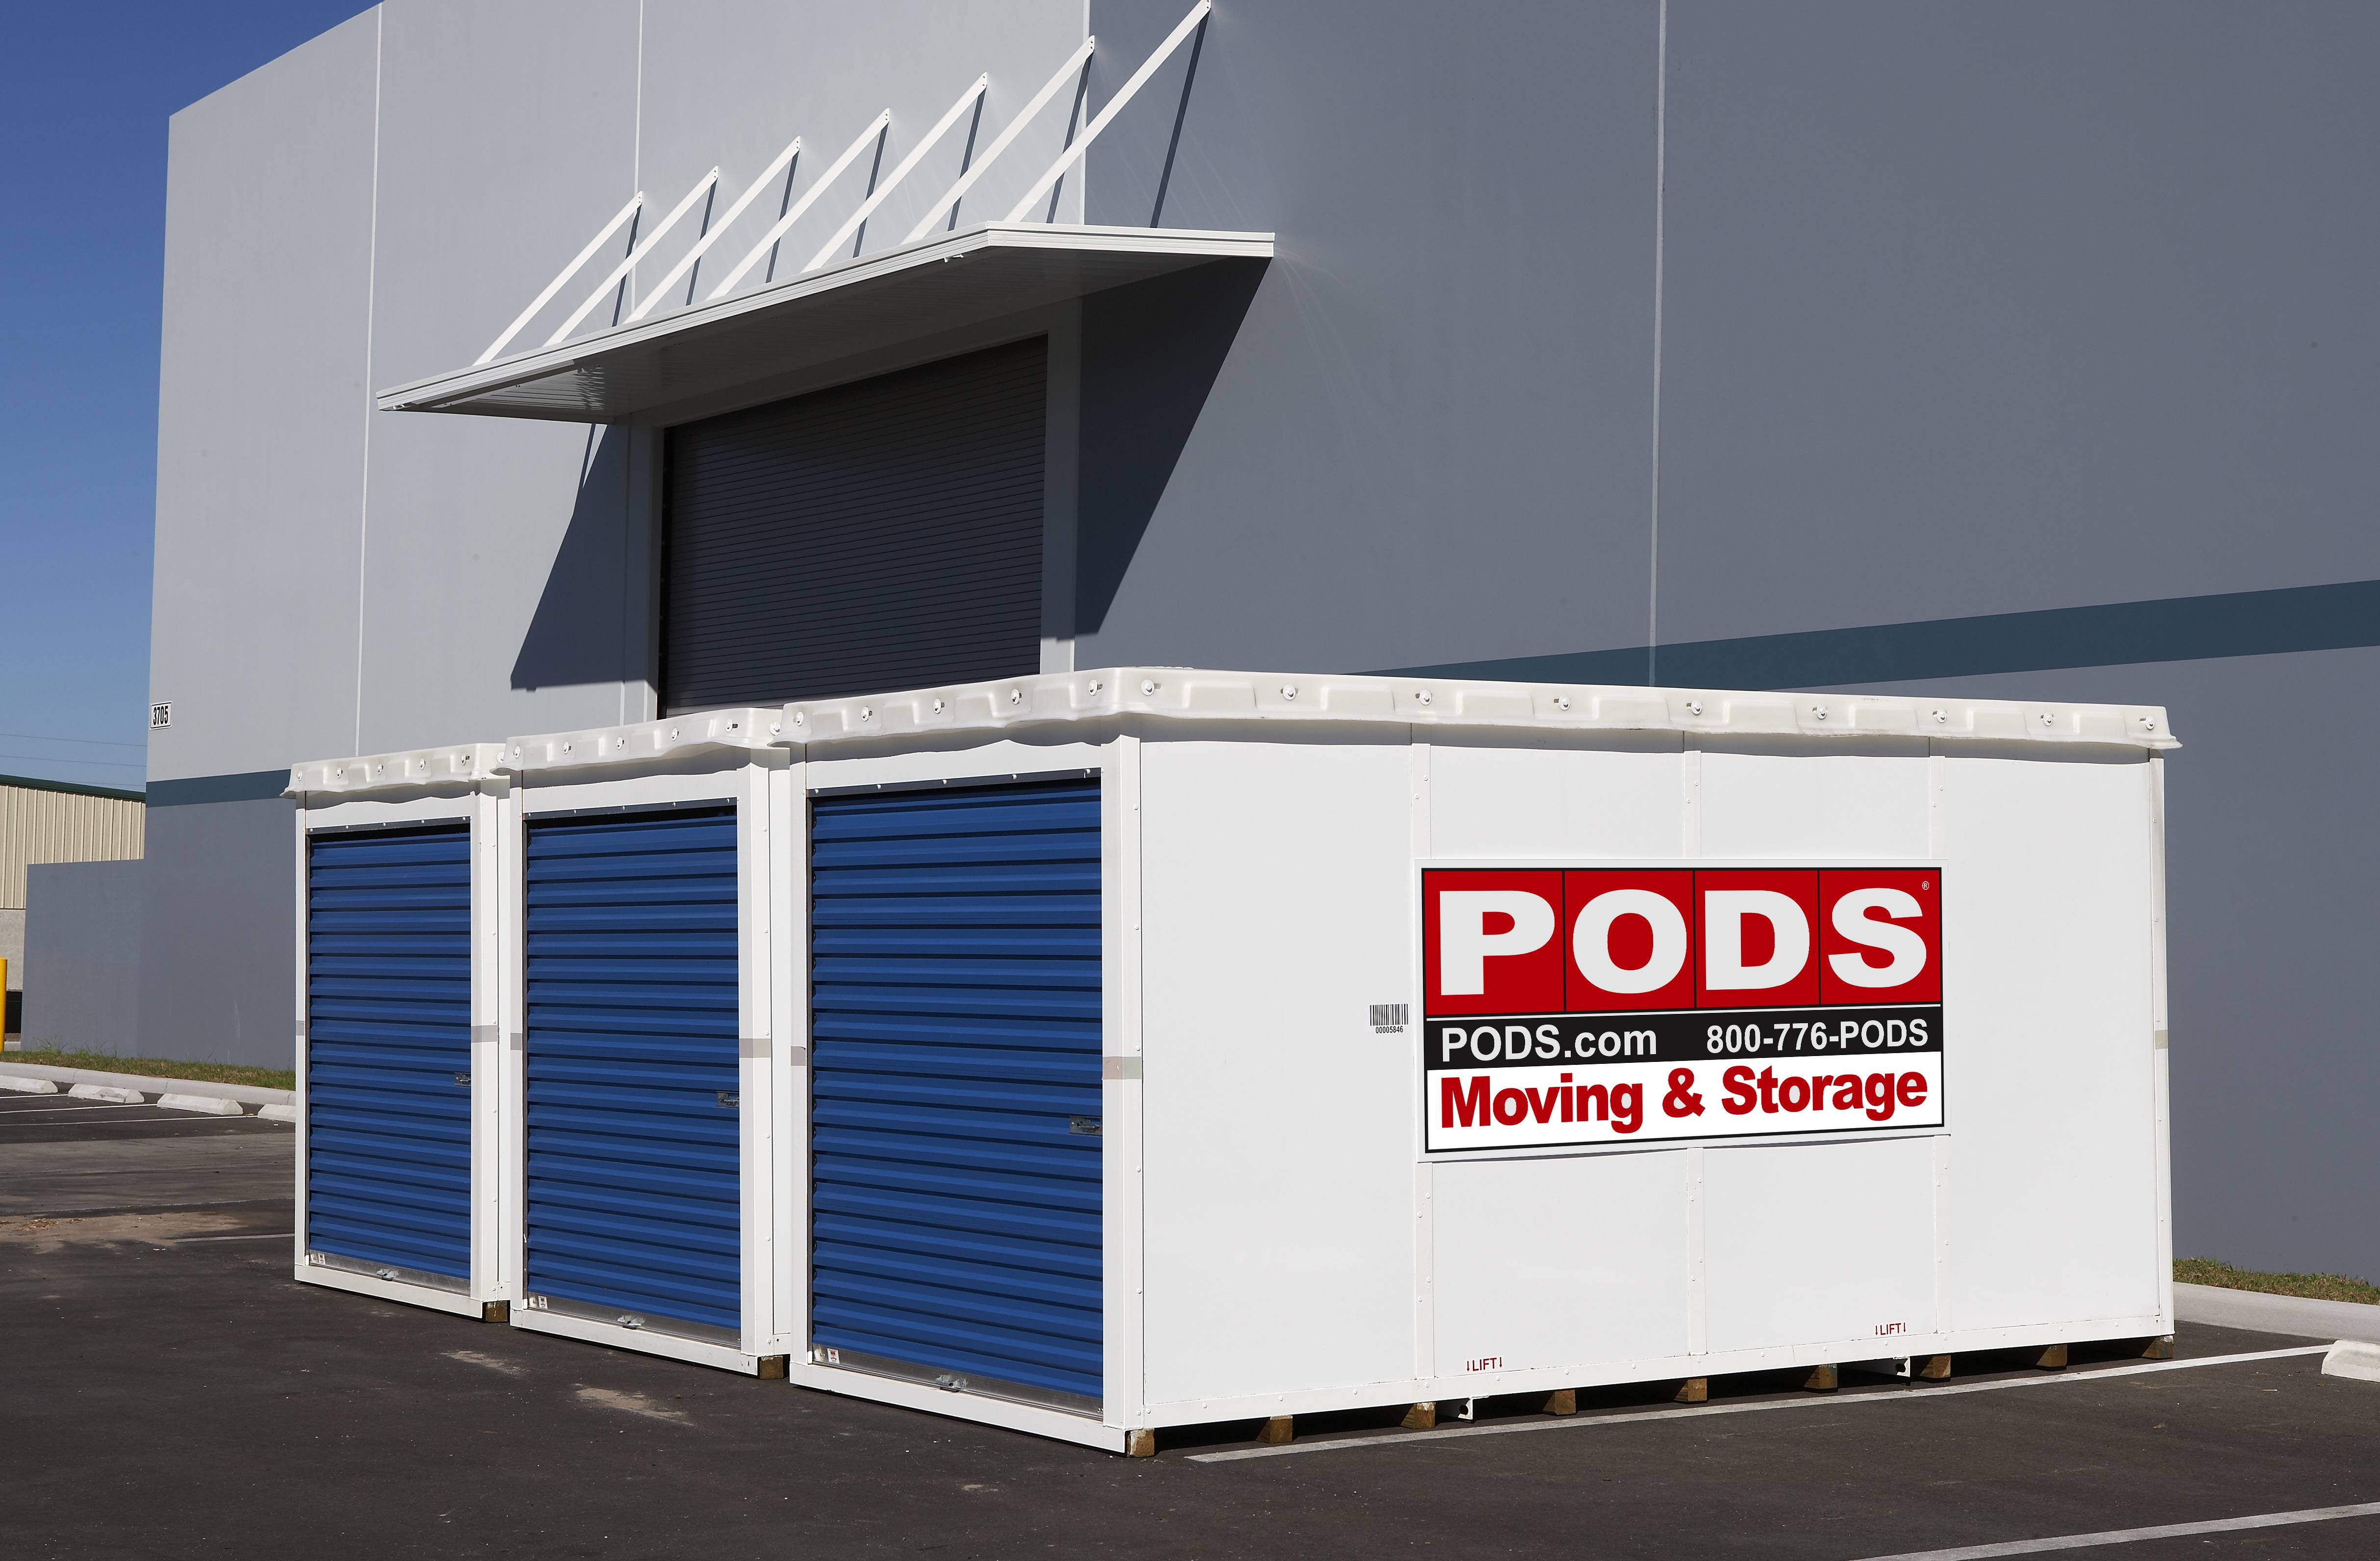 PODS 10800 Ocean Mist Pkwy Castroville CA 95012 YPcom